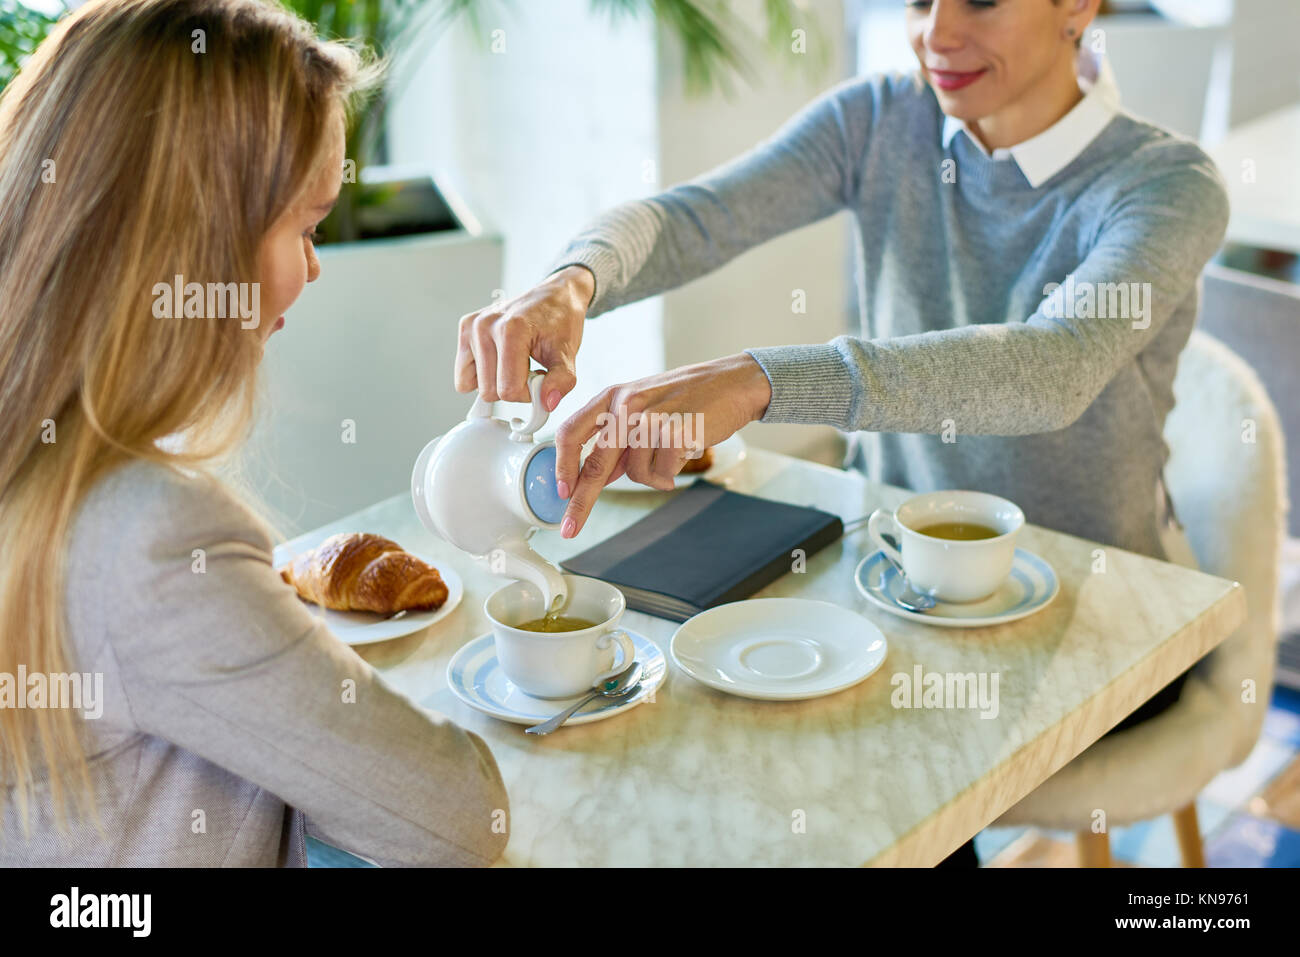 Two Young Women Enjoying Breakfast in Cafe - Stock Image